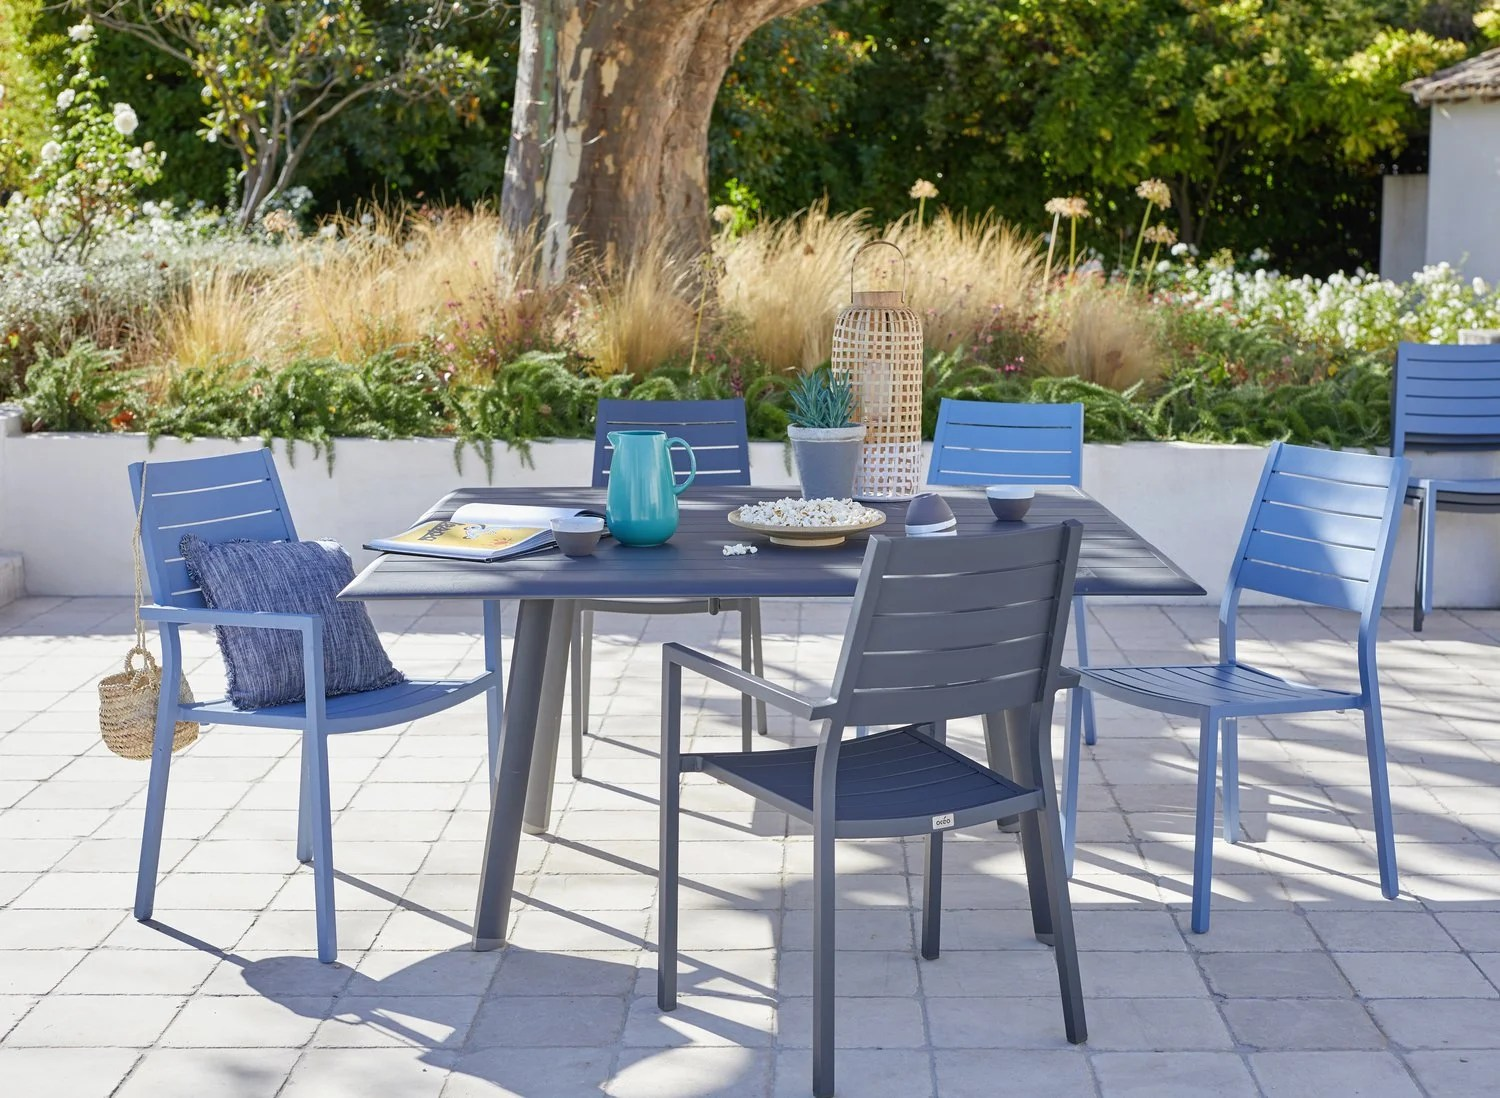 Salon De Jardin Pour Terrasse Appartement La Nouvelle Collection De Salon De Jardin 2019 Leroy Merlin